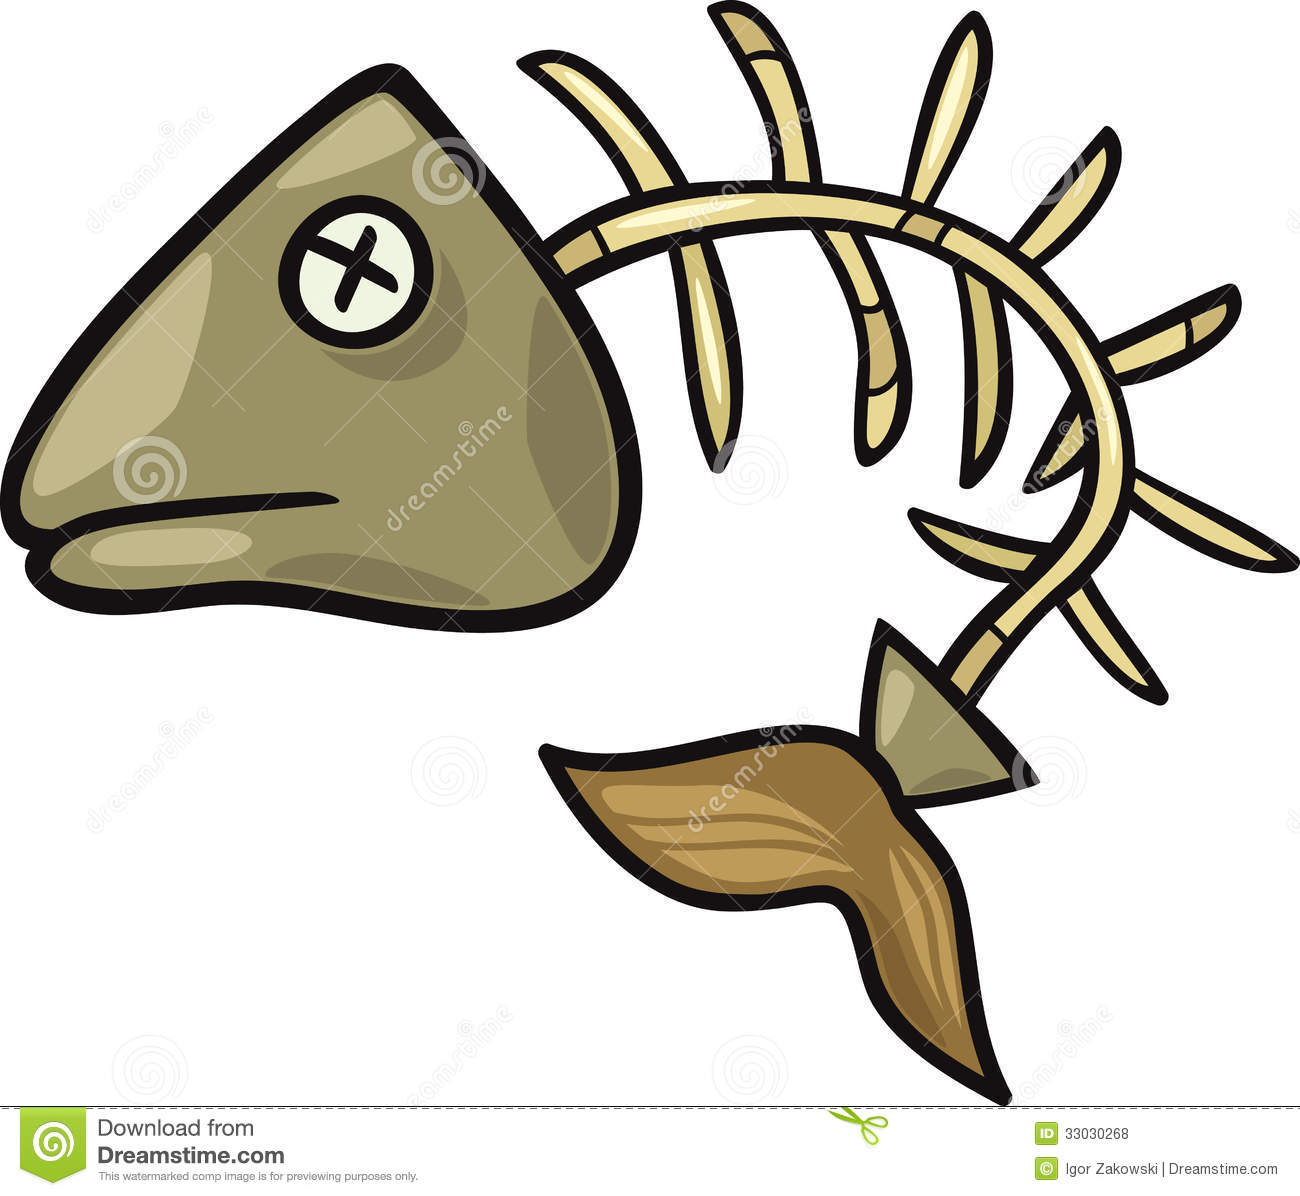 an indian family s fish and chips tandoori sea bream paprika and rh reddit com Sea Bream Fish Species of Bream Fish